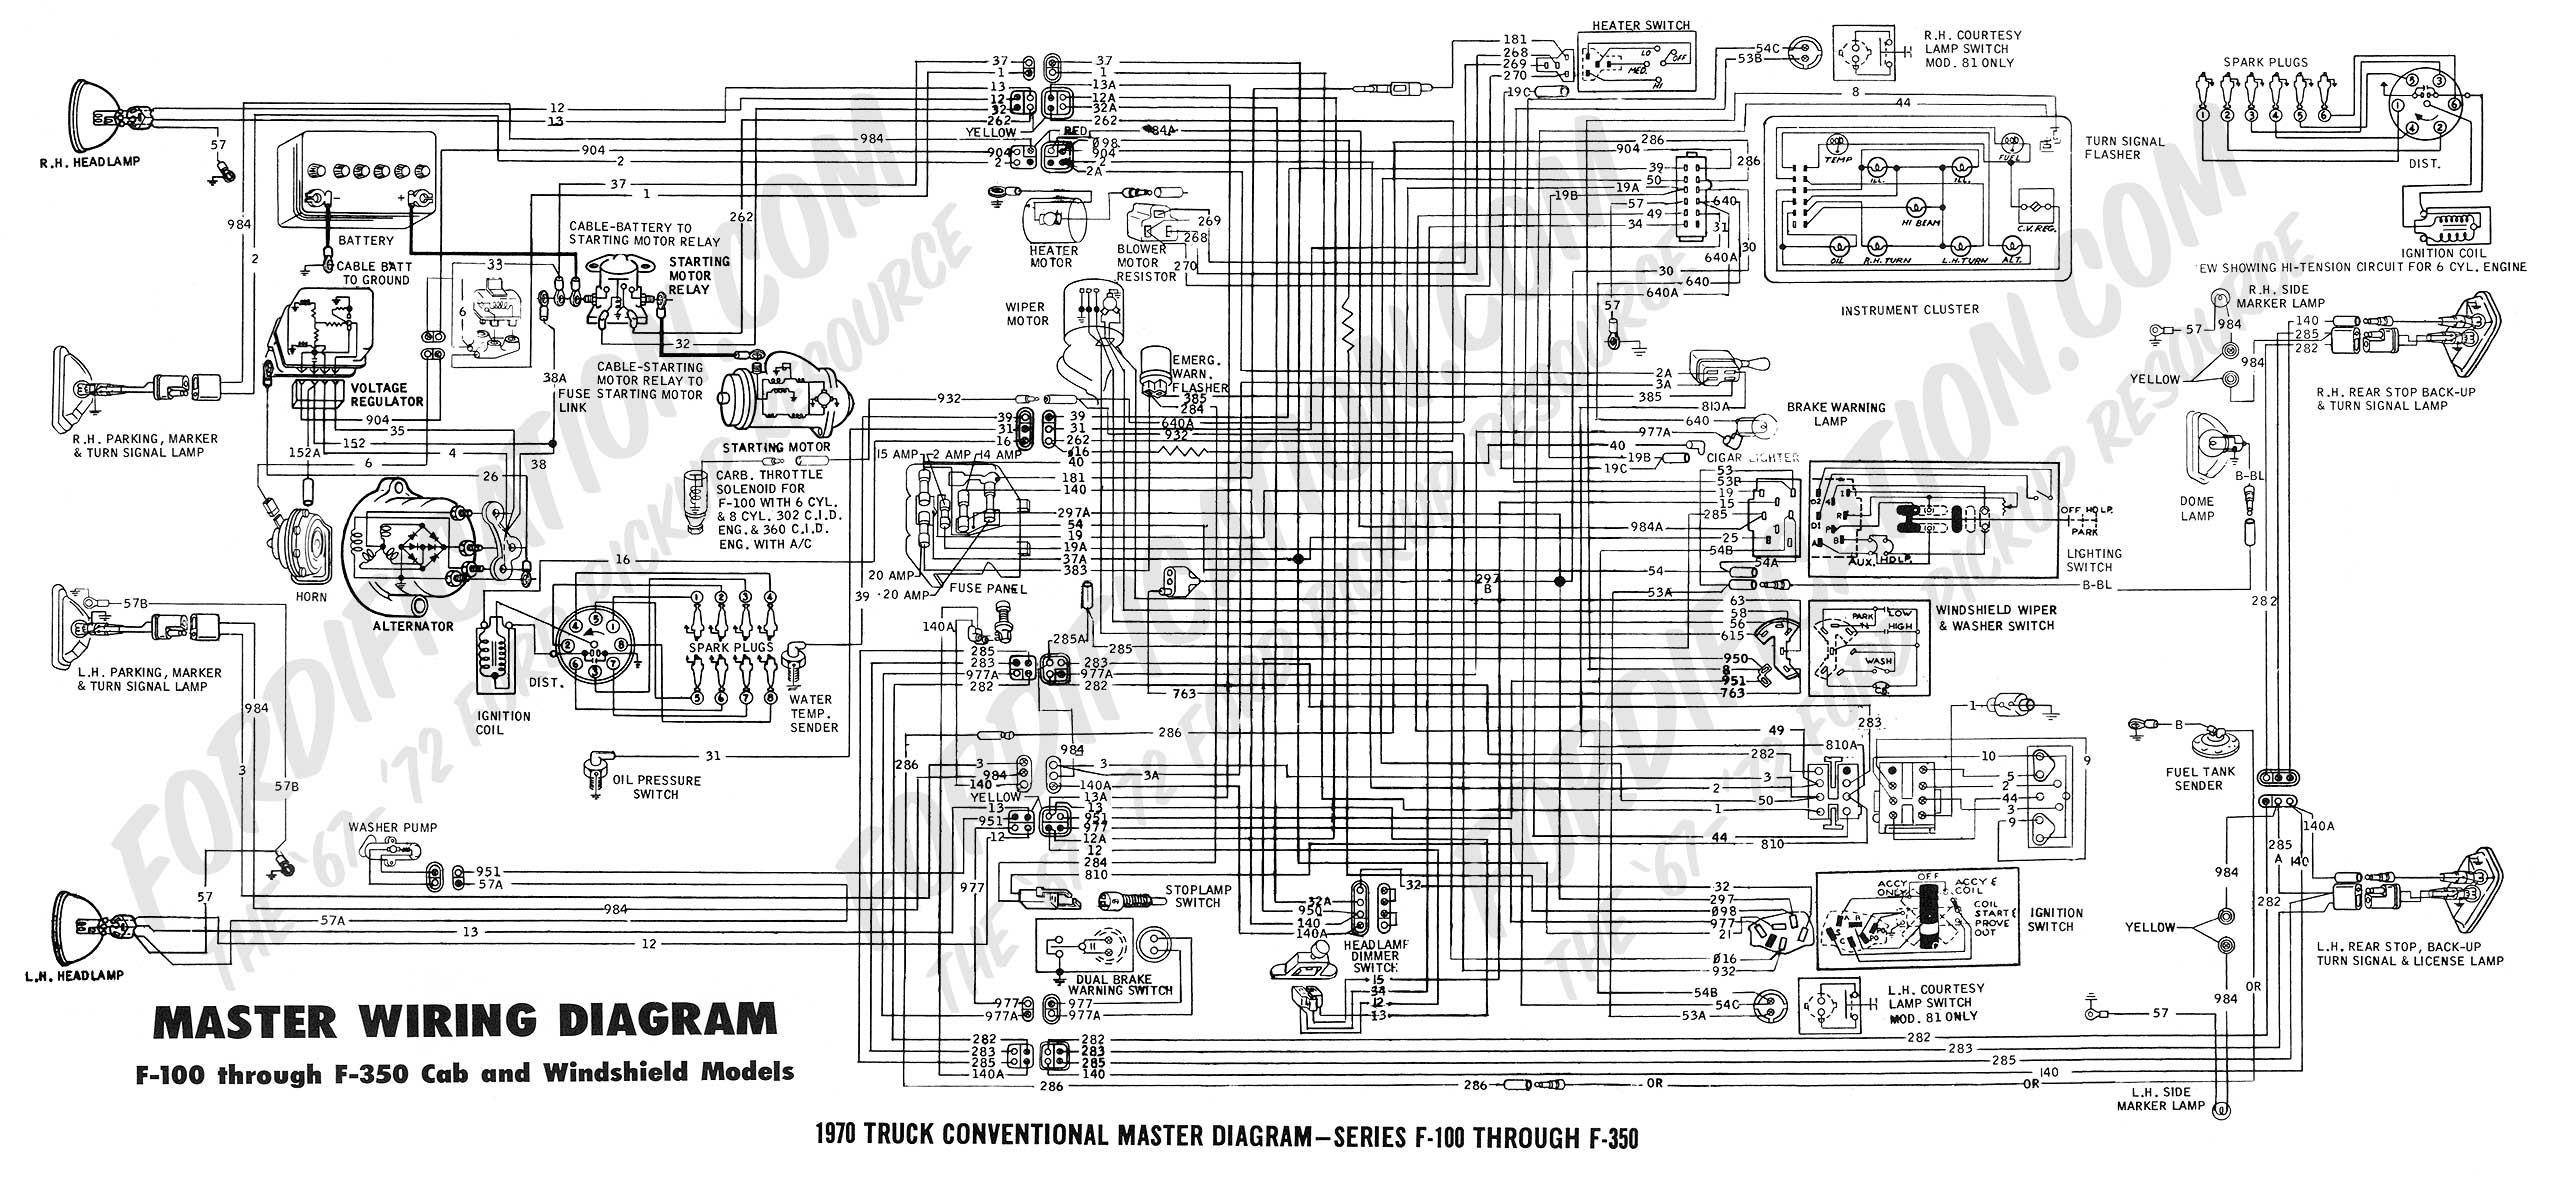 wiring diagram 70_master camper wiring diagram manual slide in camper wiring diagram truck camper wiring diagram at gsmportal.co